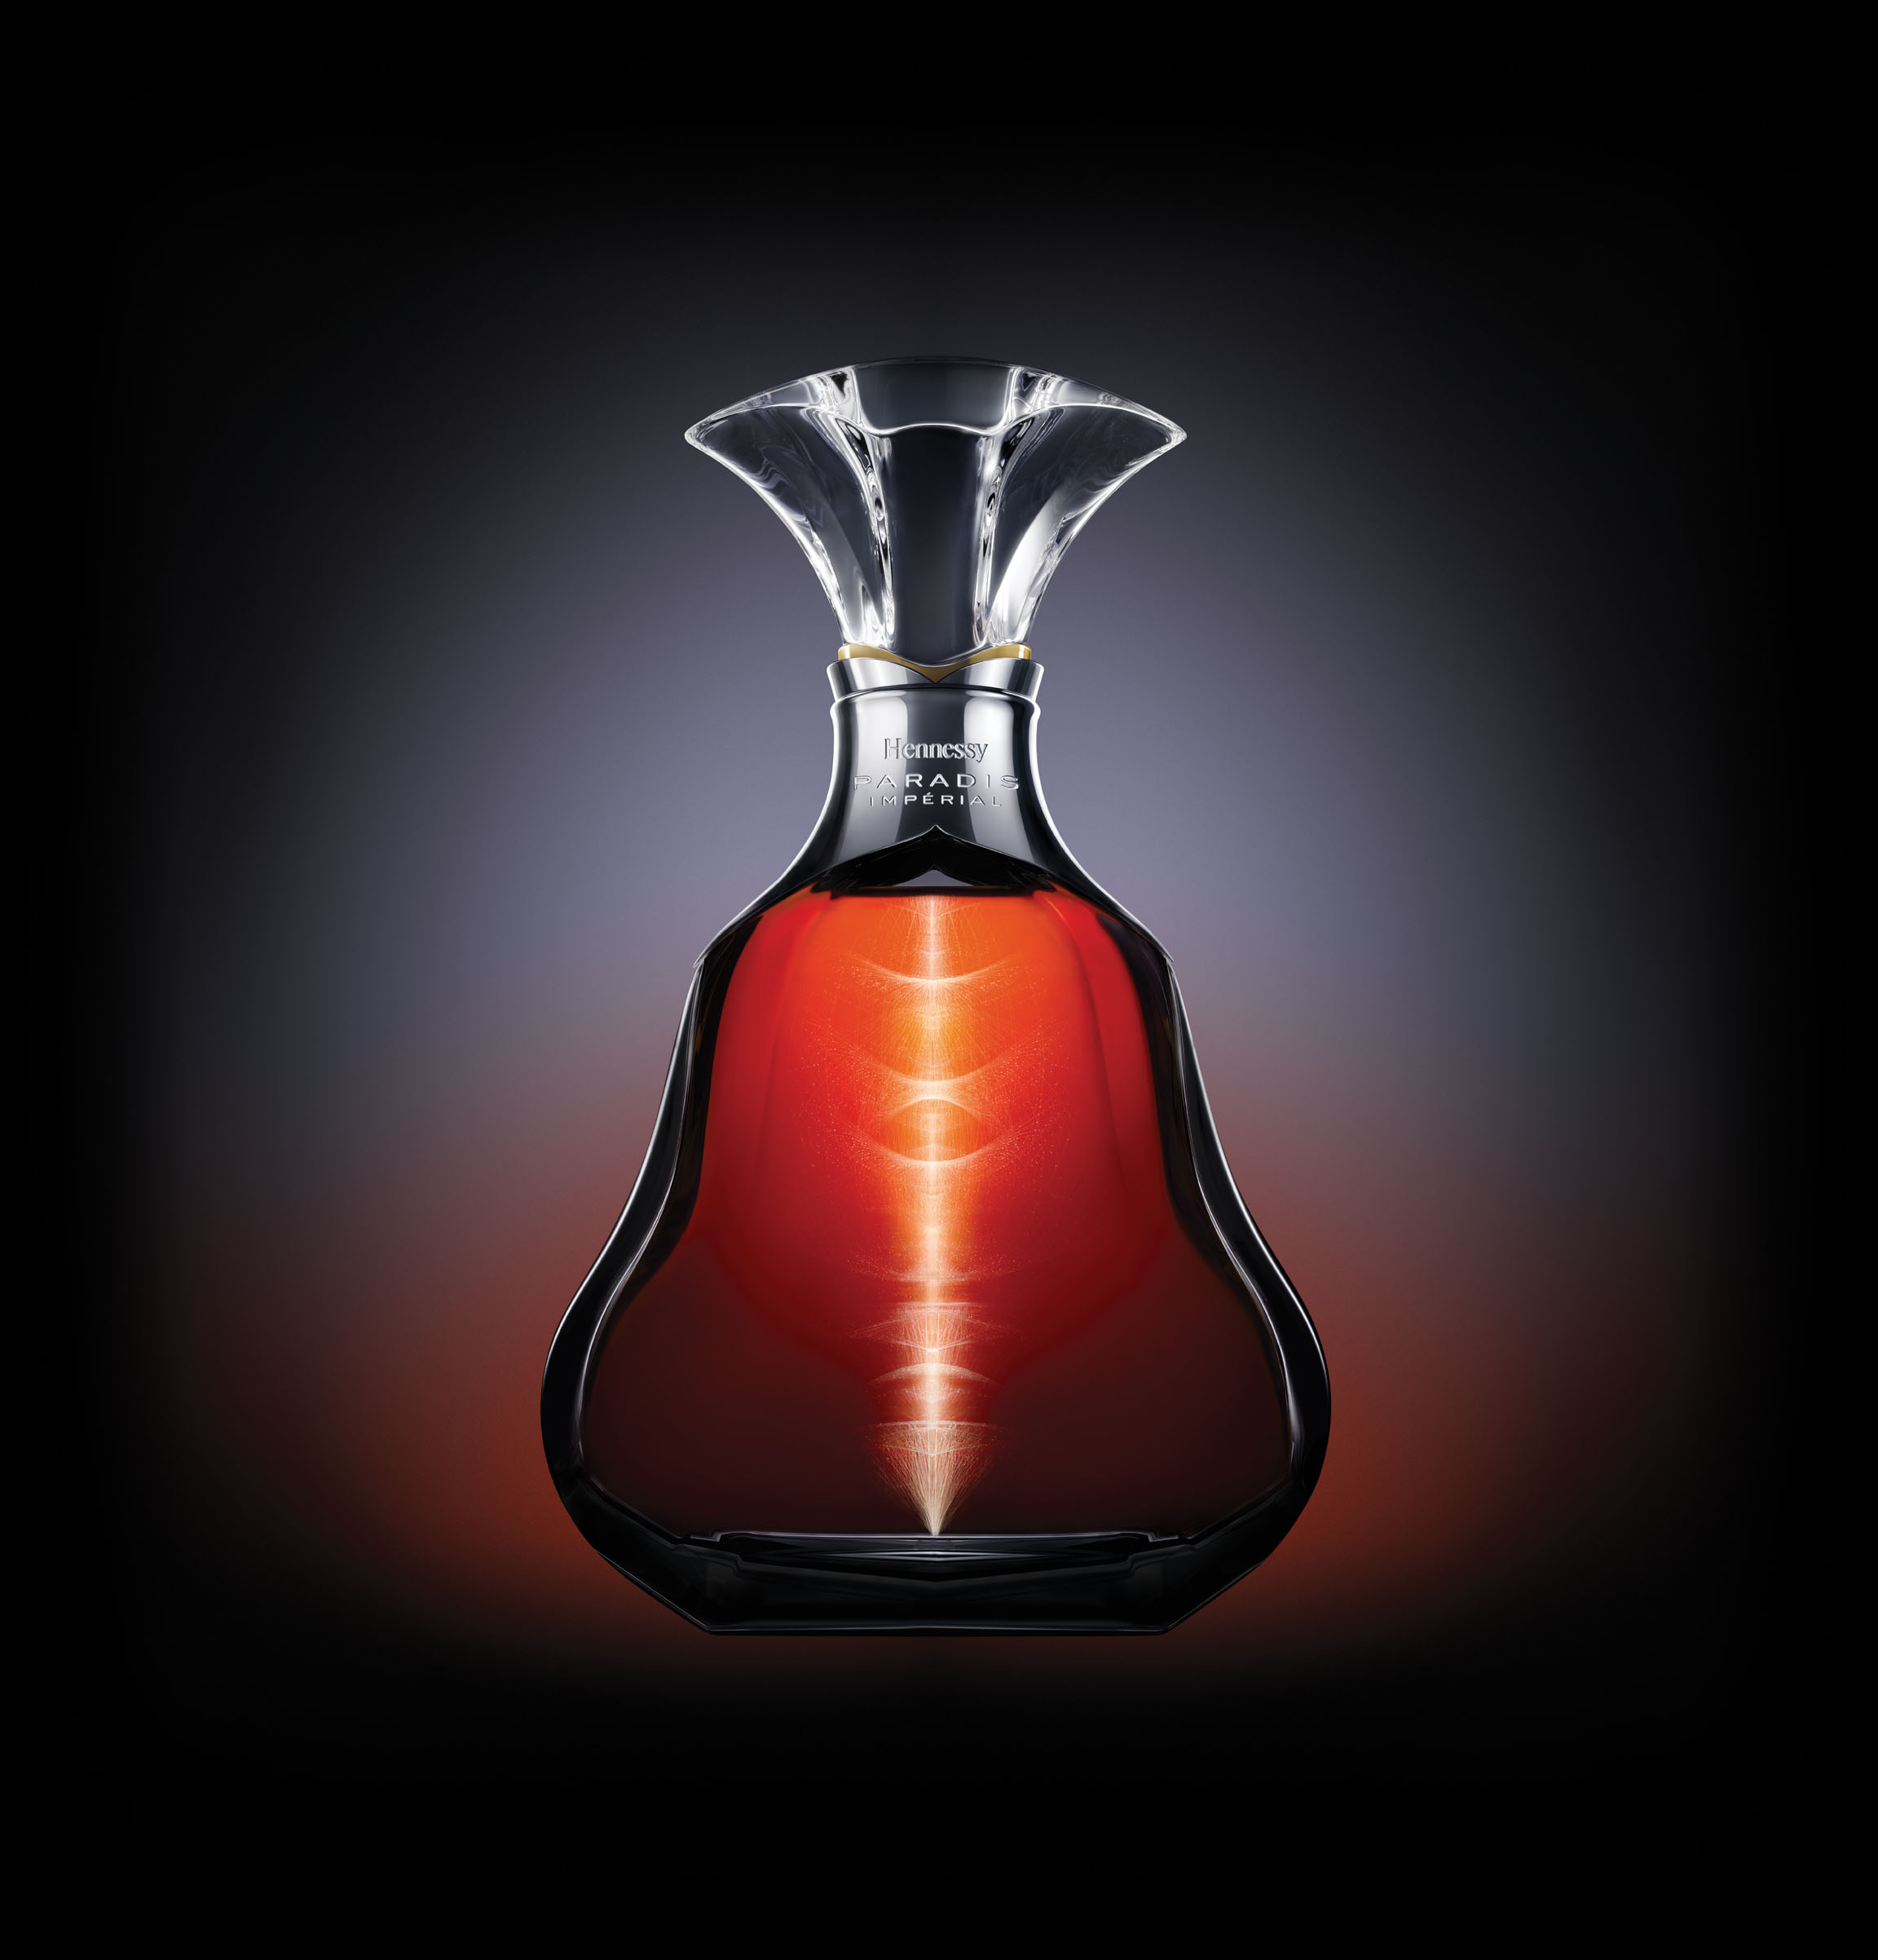 The rare blend that is Hennessy Paradis Impérial cognac is the result of the relentless quest for the finest eaux-de-vie, and the unique savoir-faire passed down through seven generations of Master Blenders from the Fillioux family.